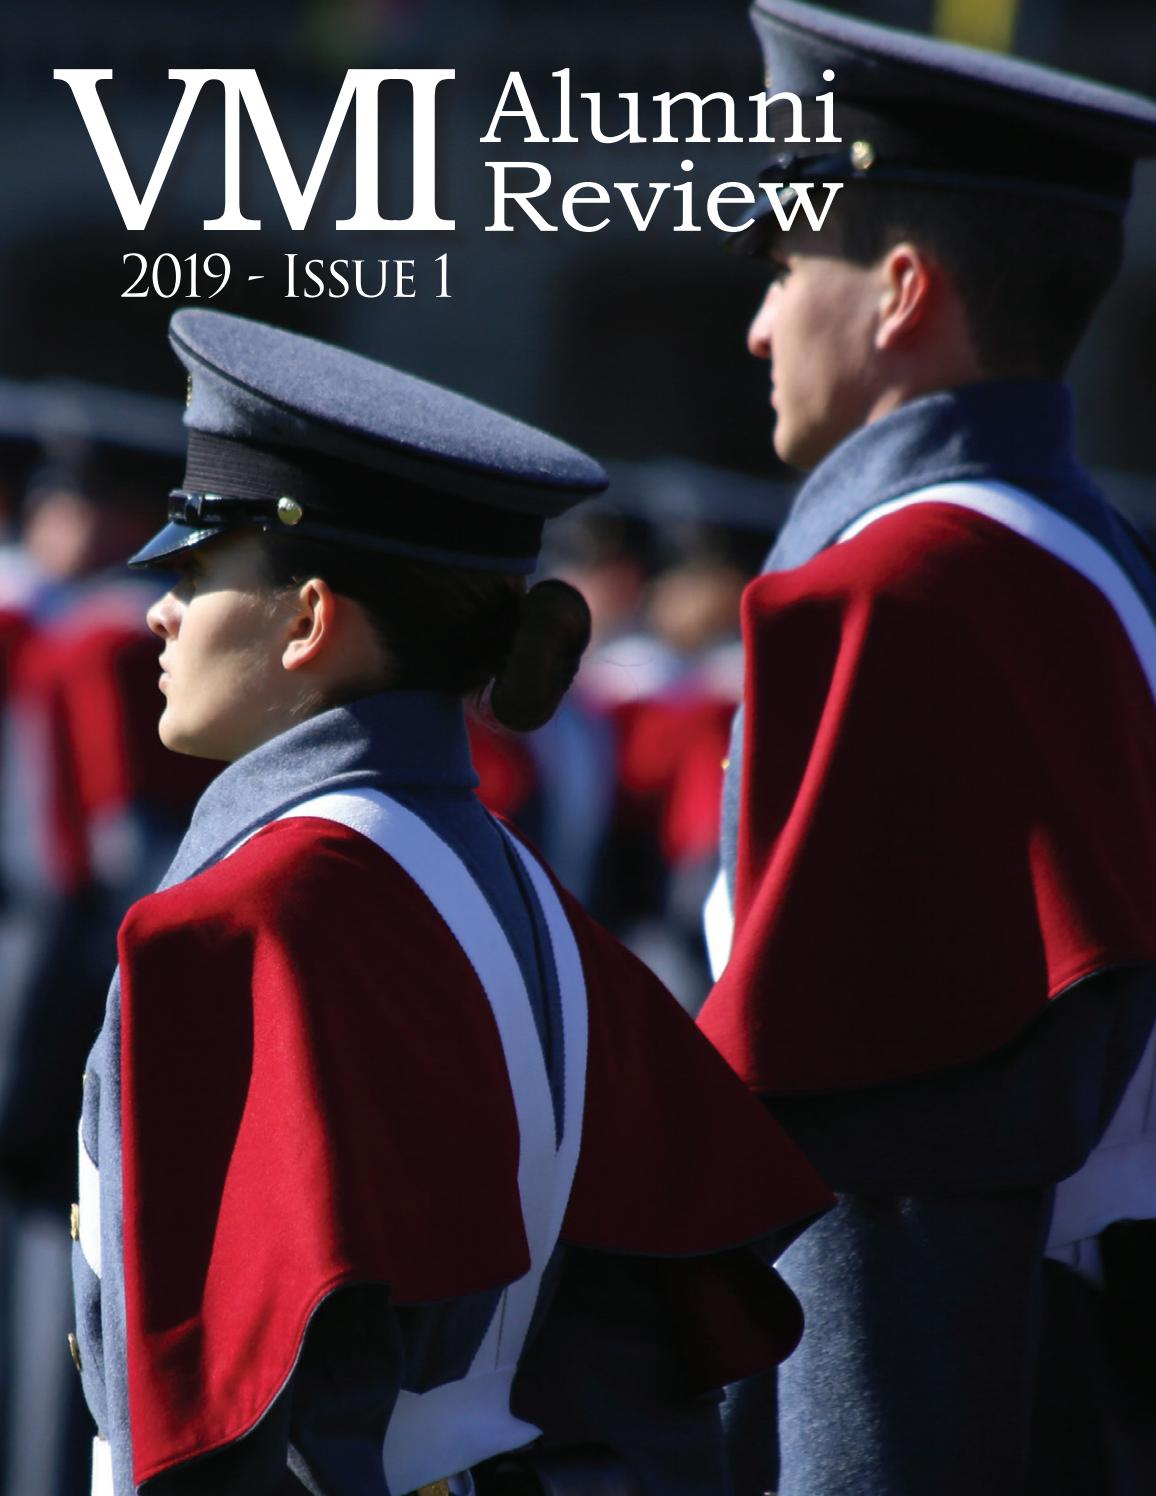 9bbe7411e 2019-Issue 1 Alumni Review by VMI Alumni Agencies - issuu